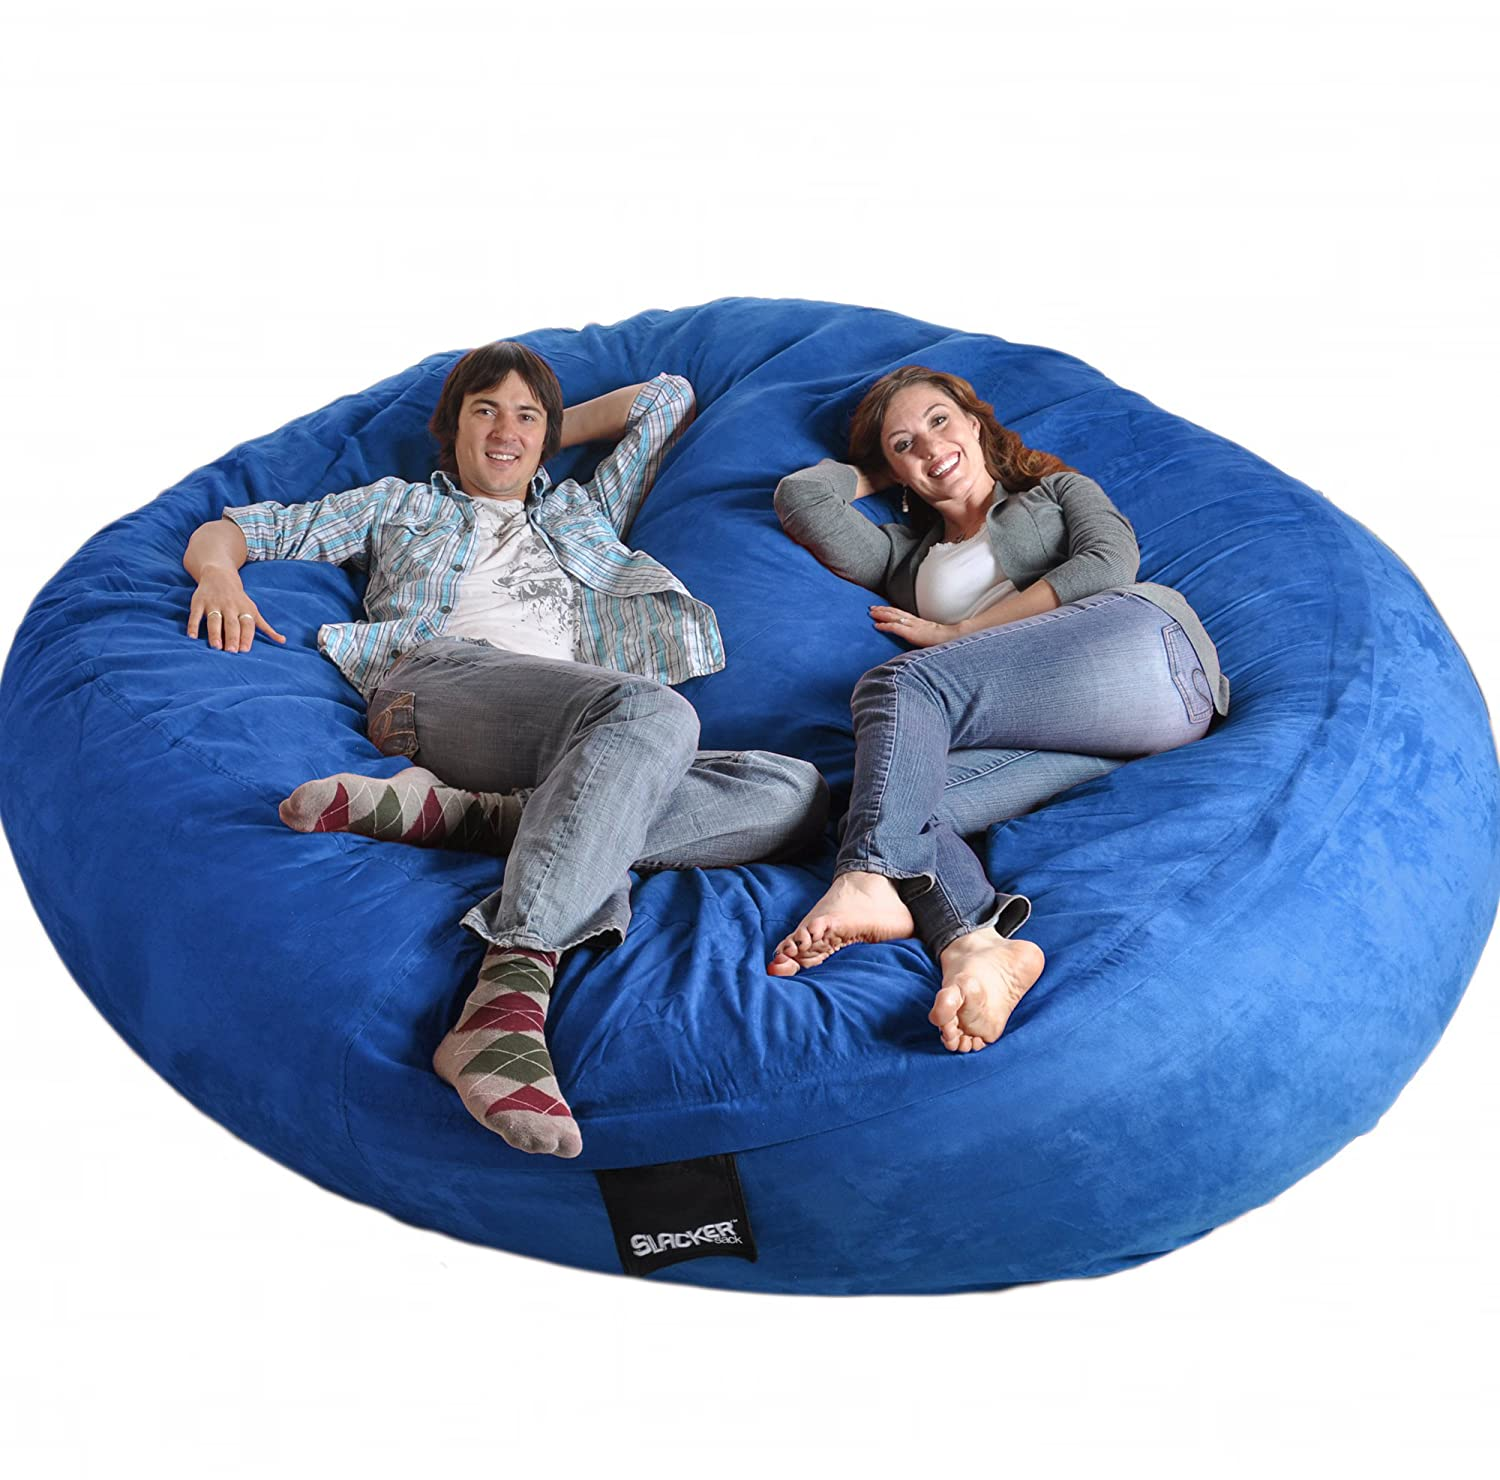 Magnificent Slacker Sack 8 Feet Round Royal Blue Xxxl Foam Bean Bag Chair Microfiber Suede Giant Like Lovesac Biggest Beanbag Onthecornerstone Fun Painted Chair Ideas Images Onthecornerstoneorg